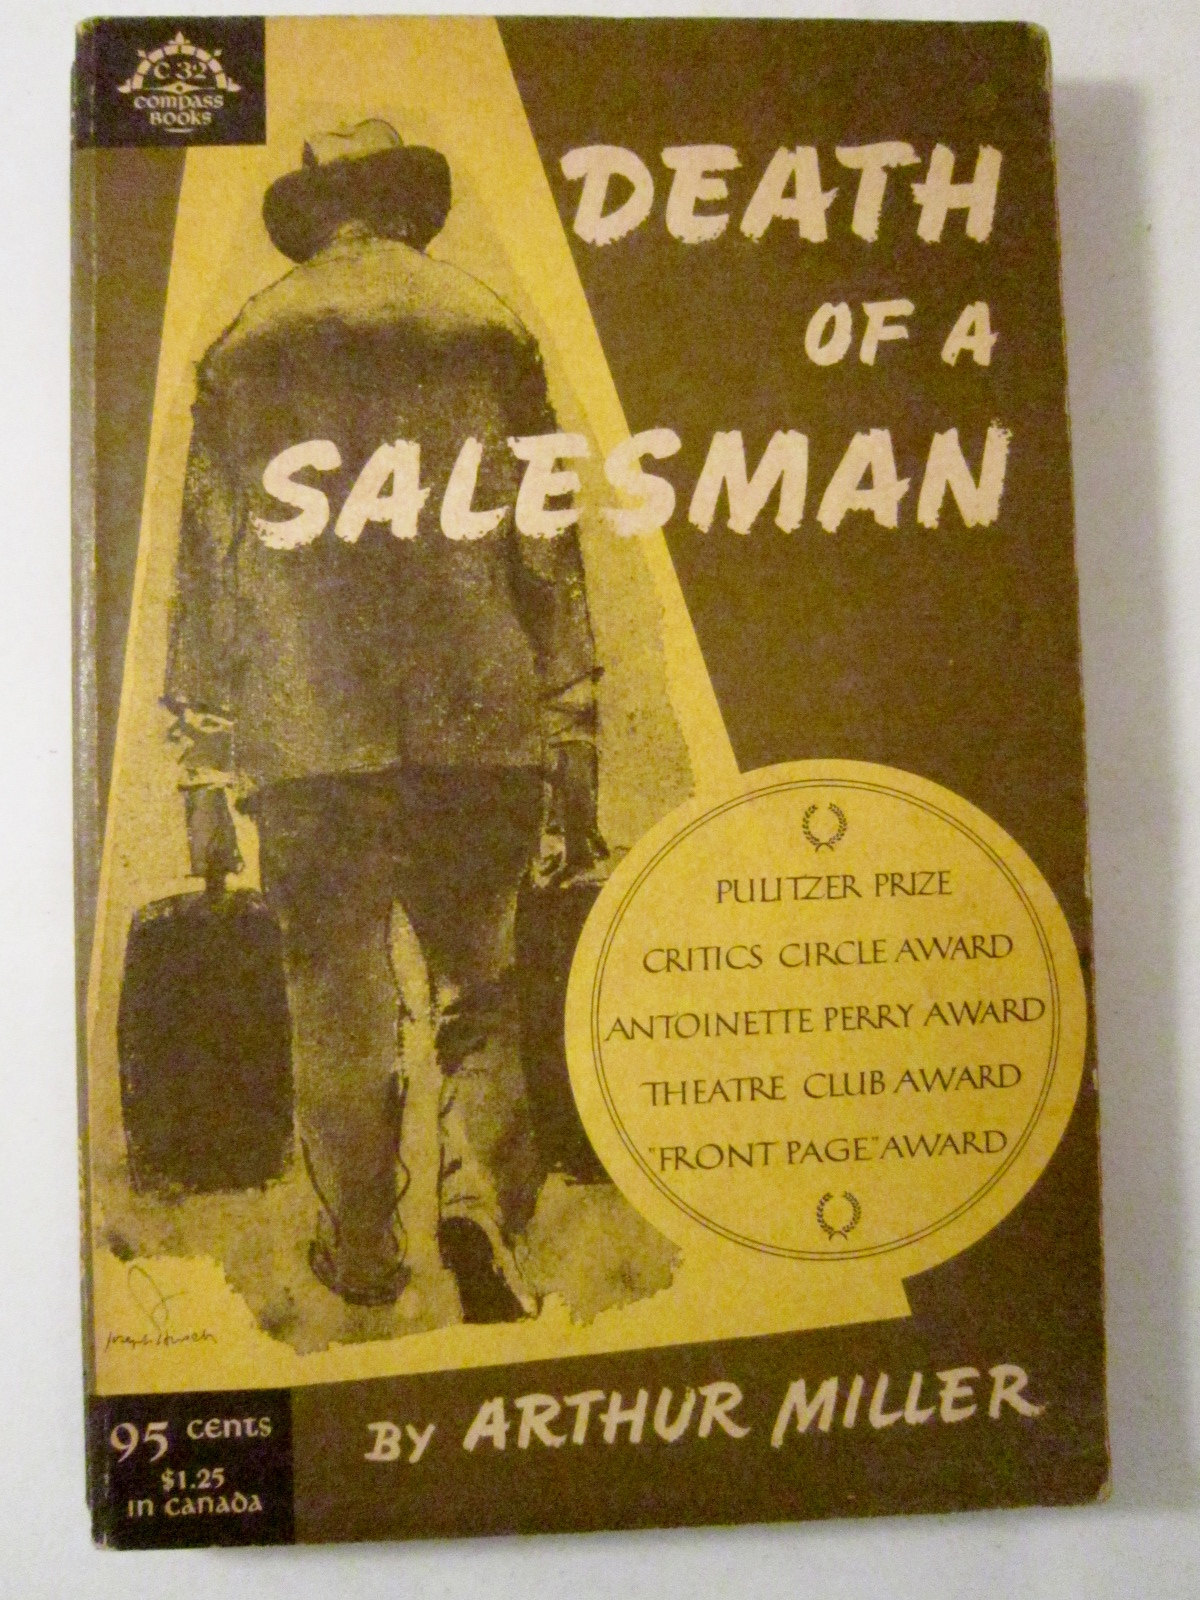 a psychoanalysis of death of a salesman a play by arthur miller This first profile in unmanliness takes a look at traveling salesman, willy loman  from arthur miller's play death of a salesman death of a.